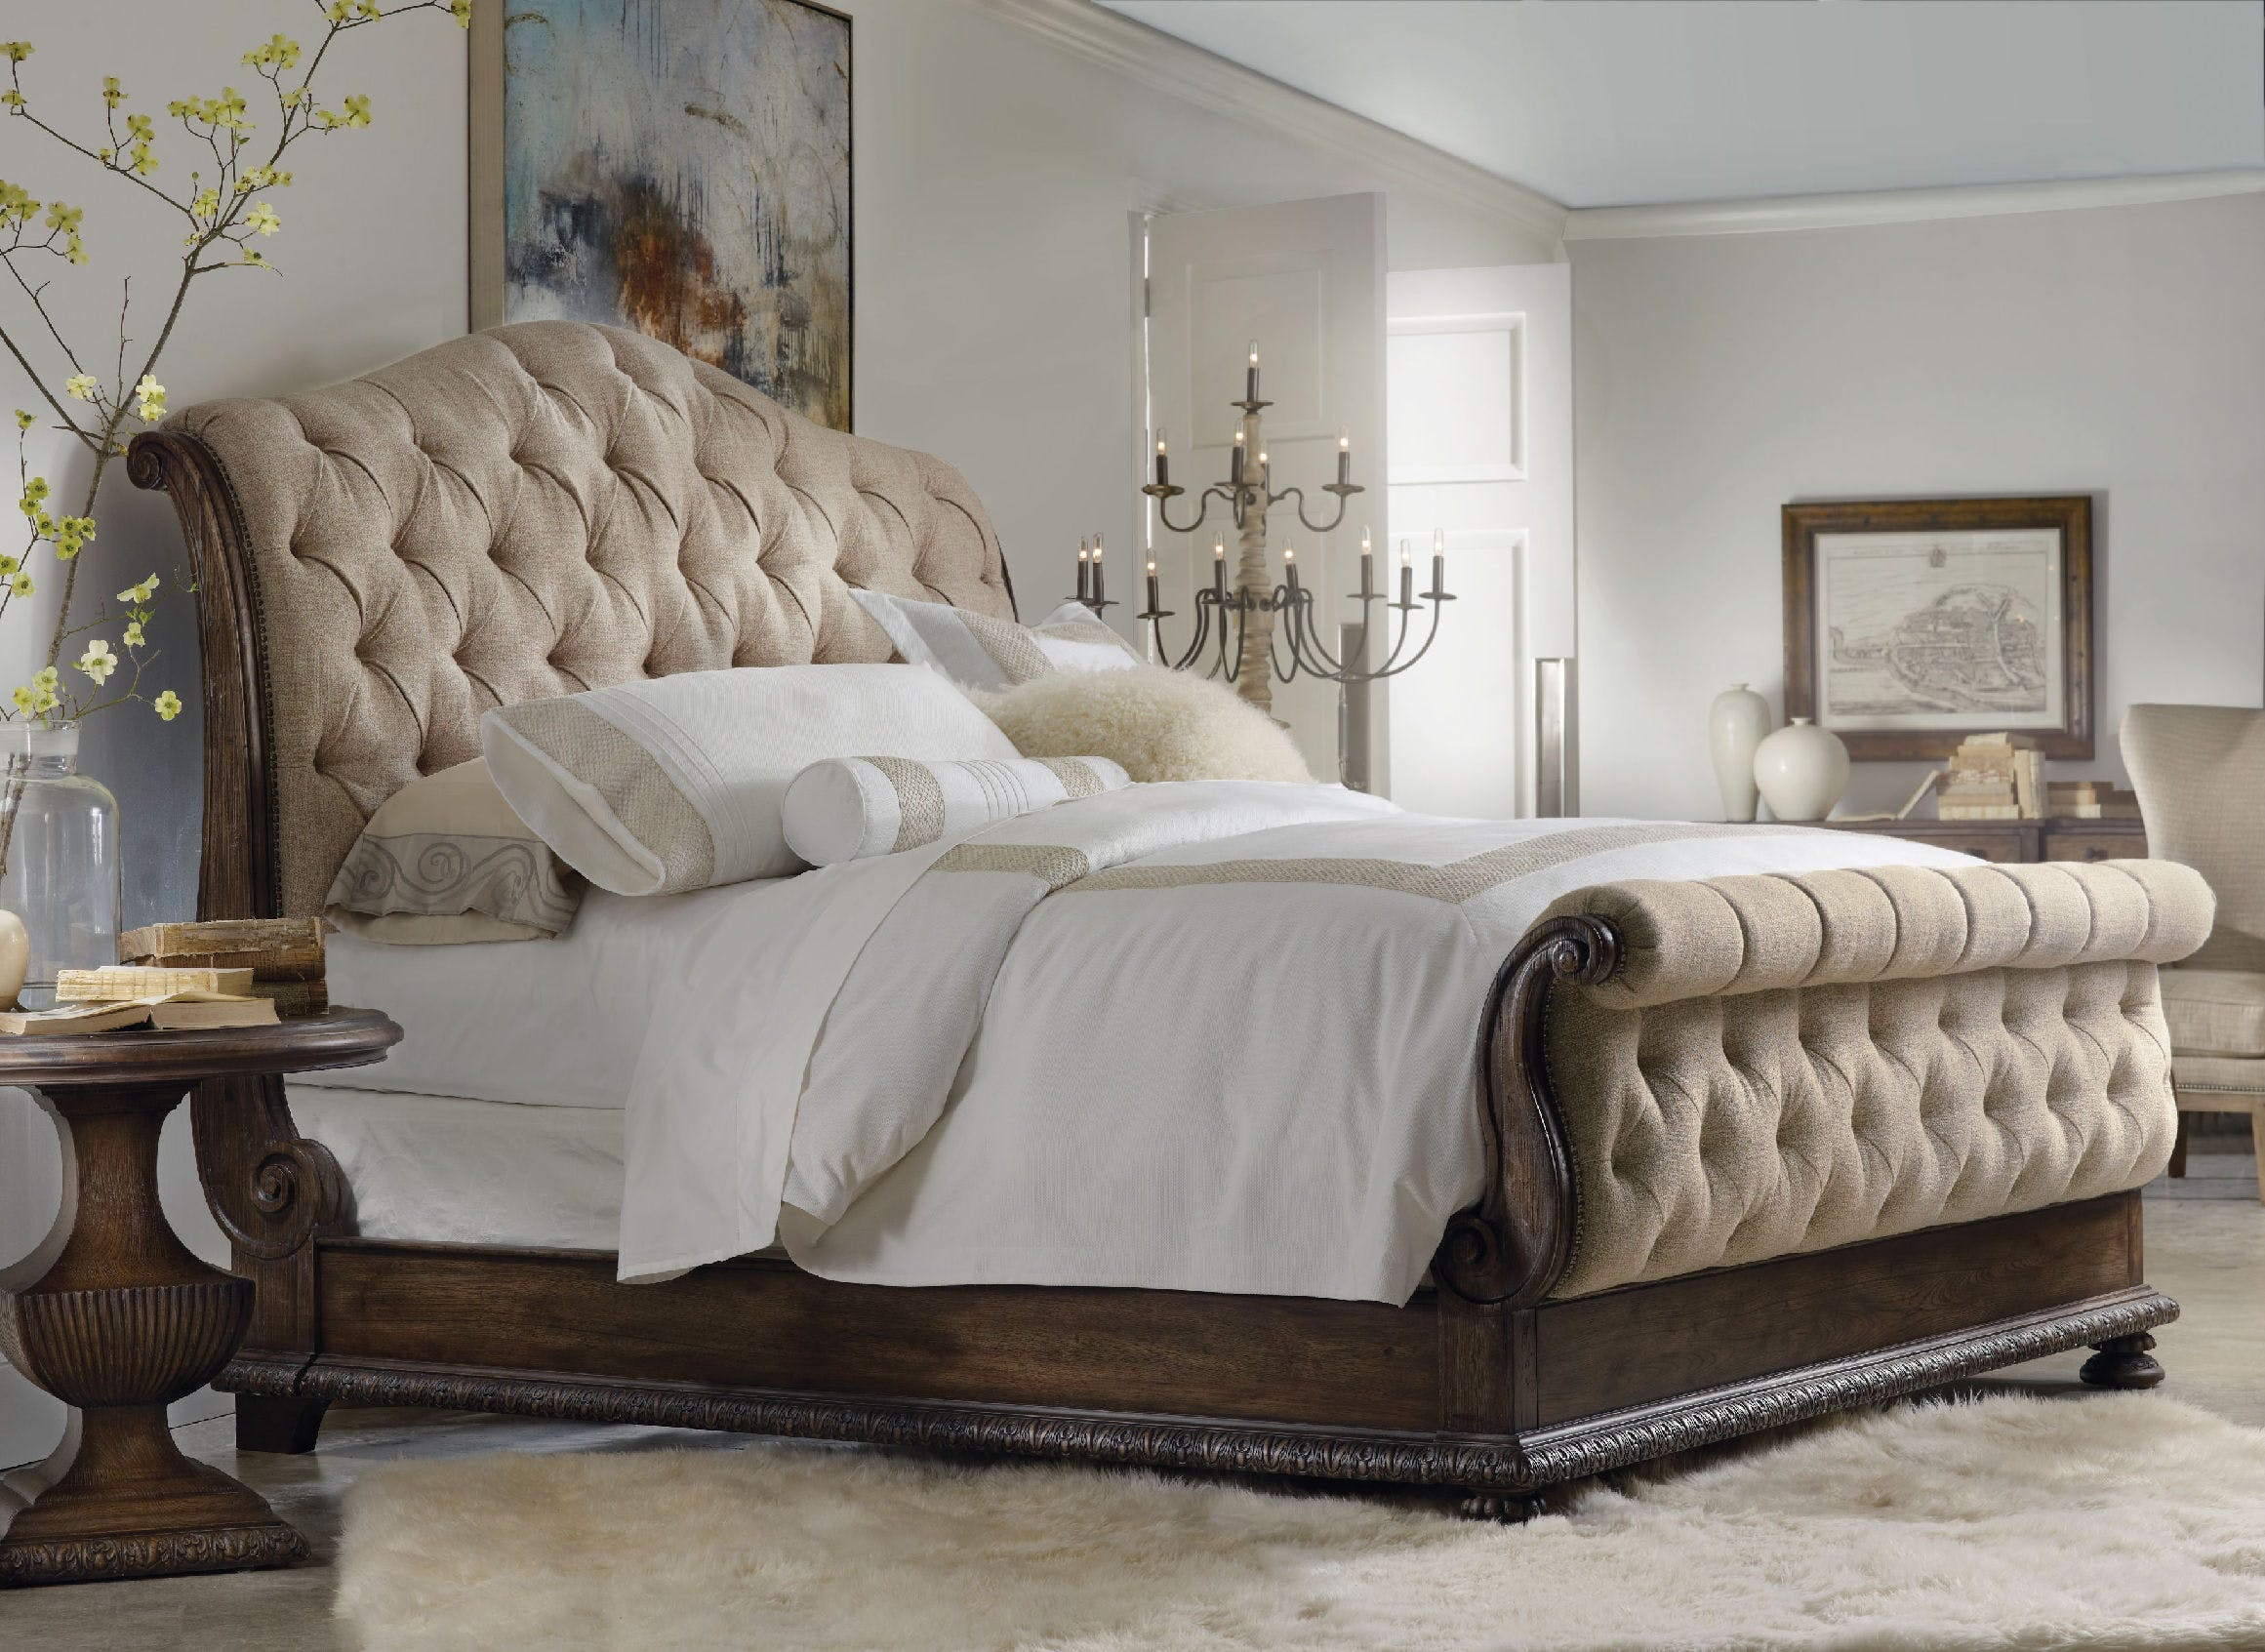 tufted bedroom furniture. Hooker Furniture Rhapsody Queen Tufted Bed 5070-90550 Bedroom A